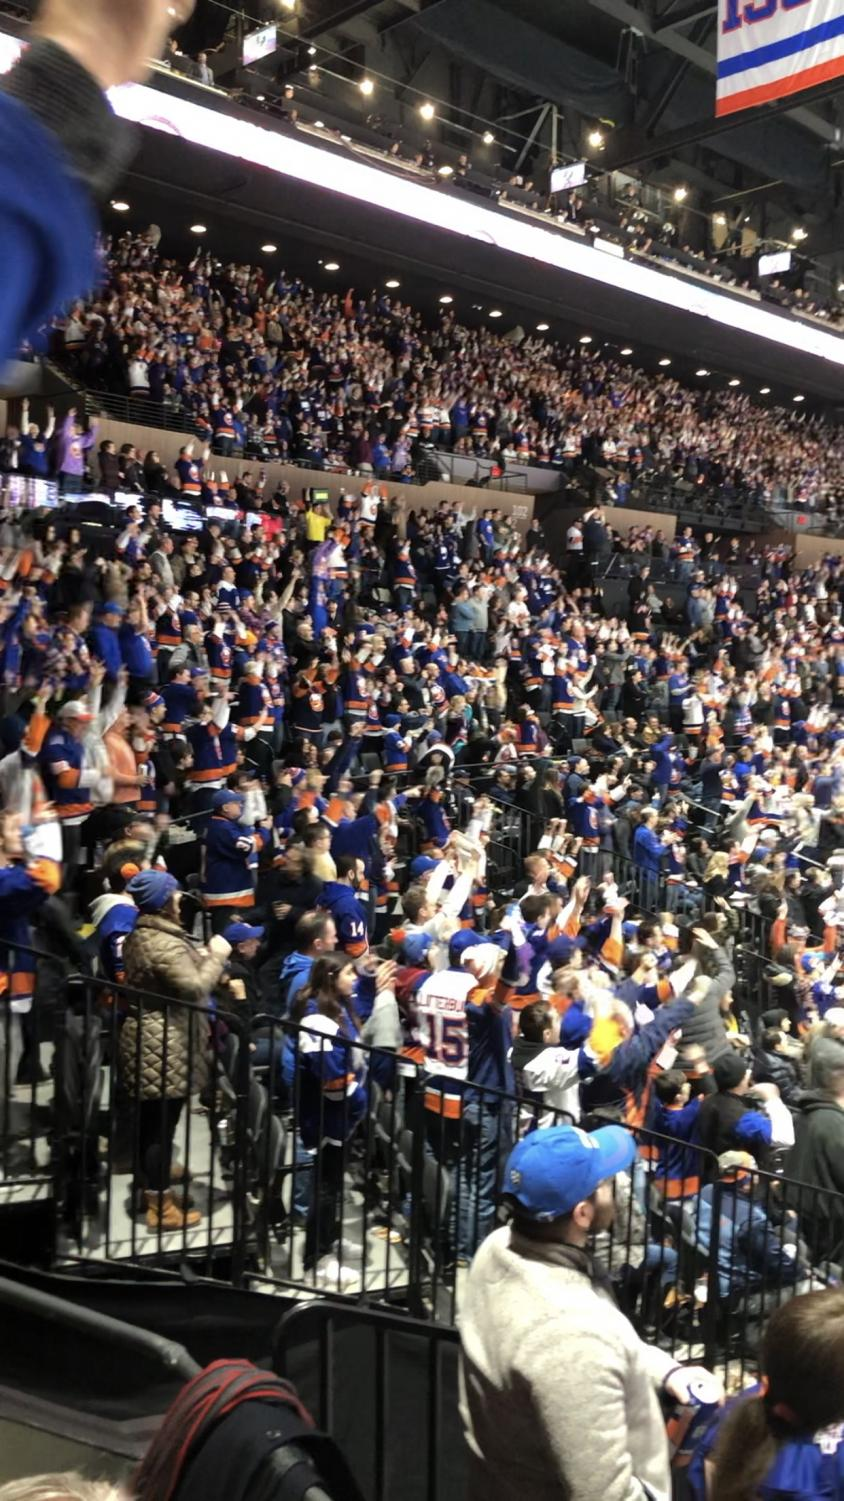 There is NO noise like that of the Islander fans rocking the Barn.